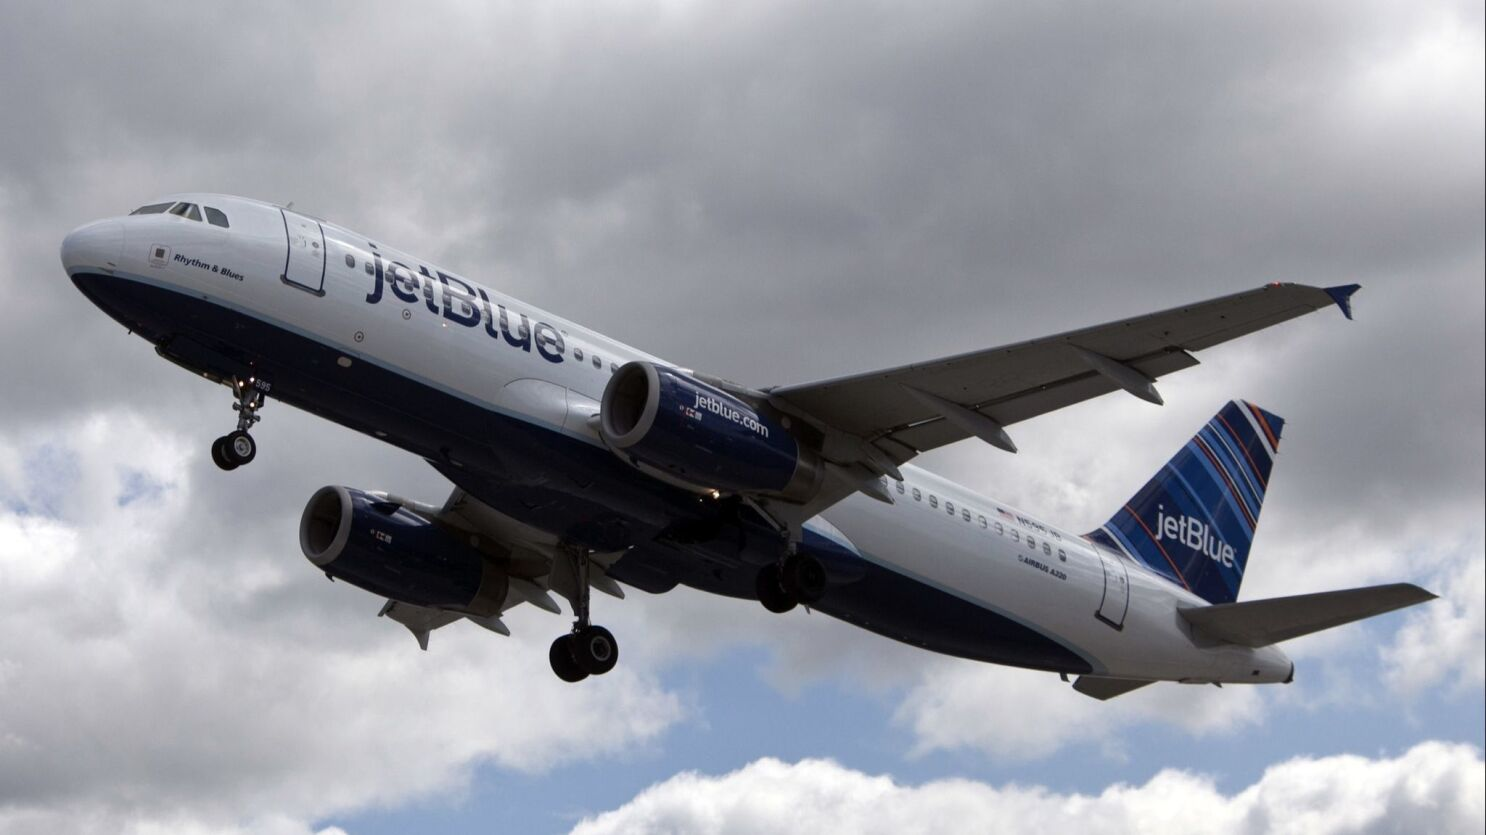 huntington beach hopes jetblue s plan to cut flights at long beach airport will bring relief from noise los angeles times flights at long beach airport